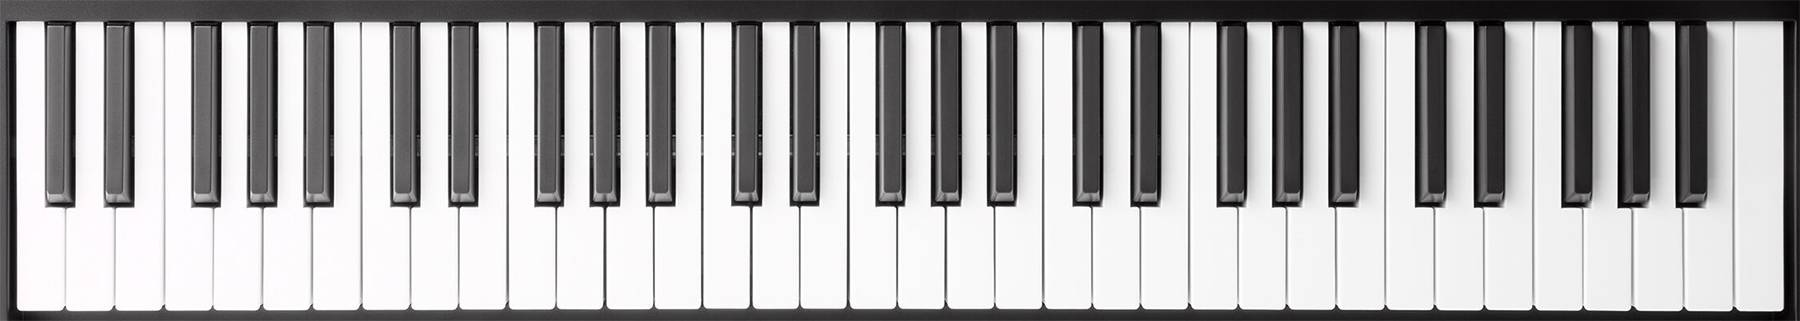 M-Audio CODE61 BLK MIDI 61 Key Keyboard Controller with X/Y Pad in Black Product Image 3